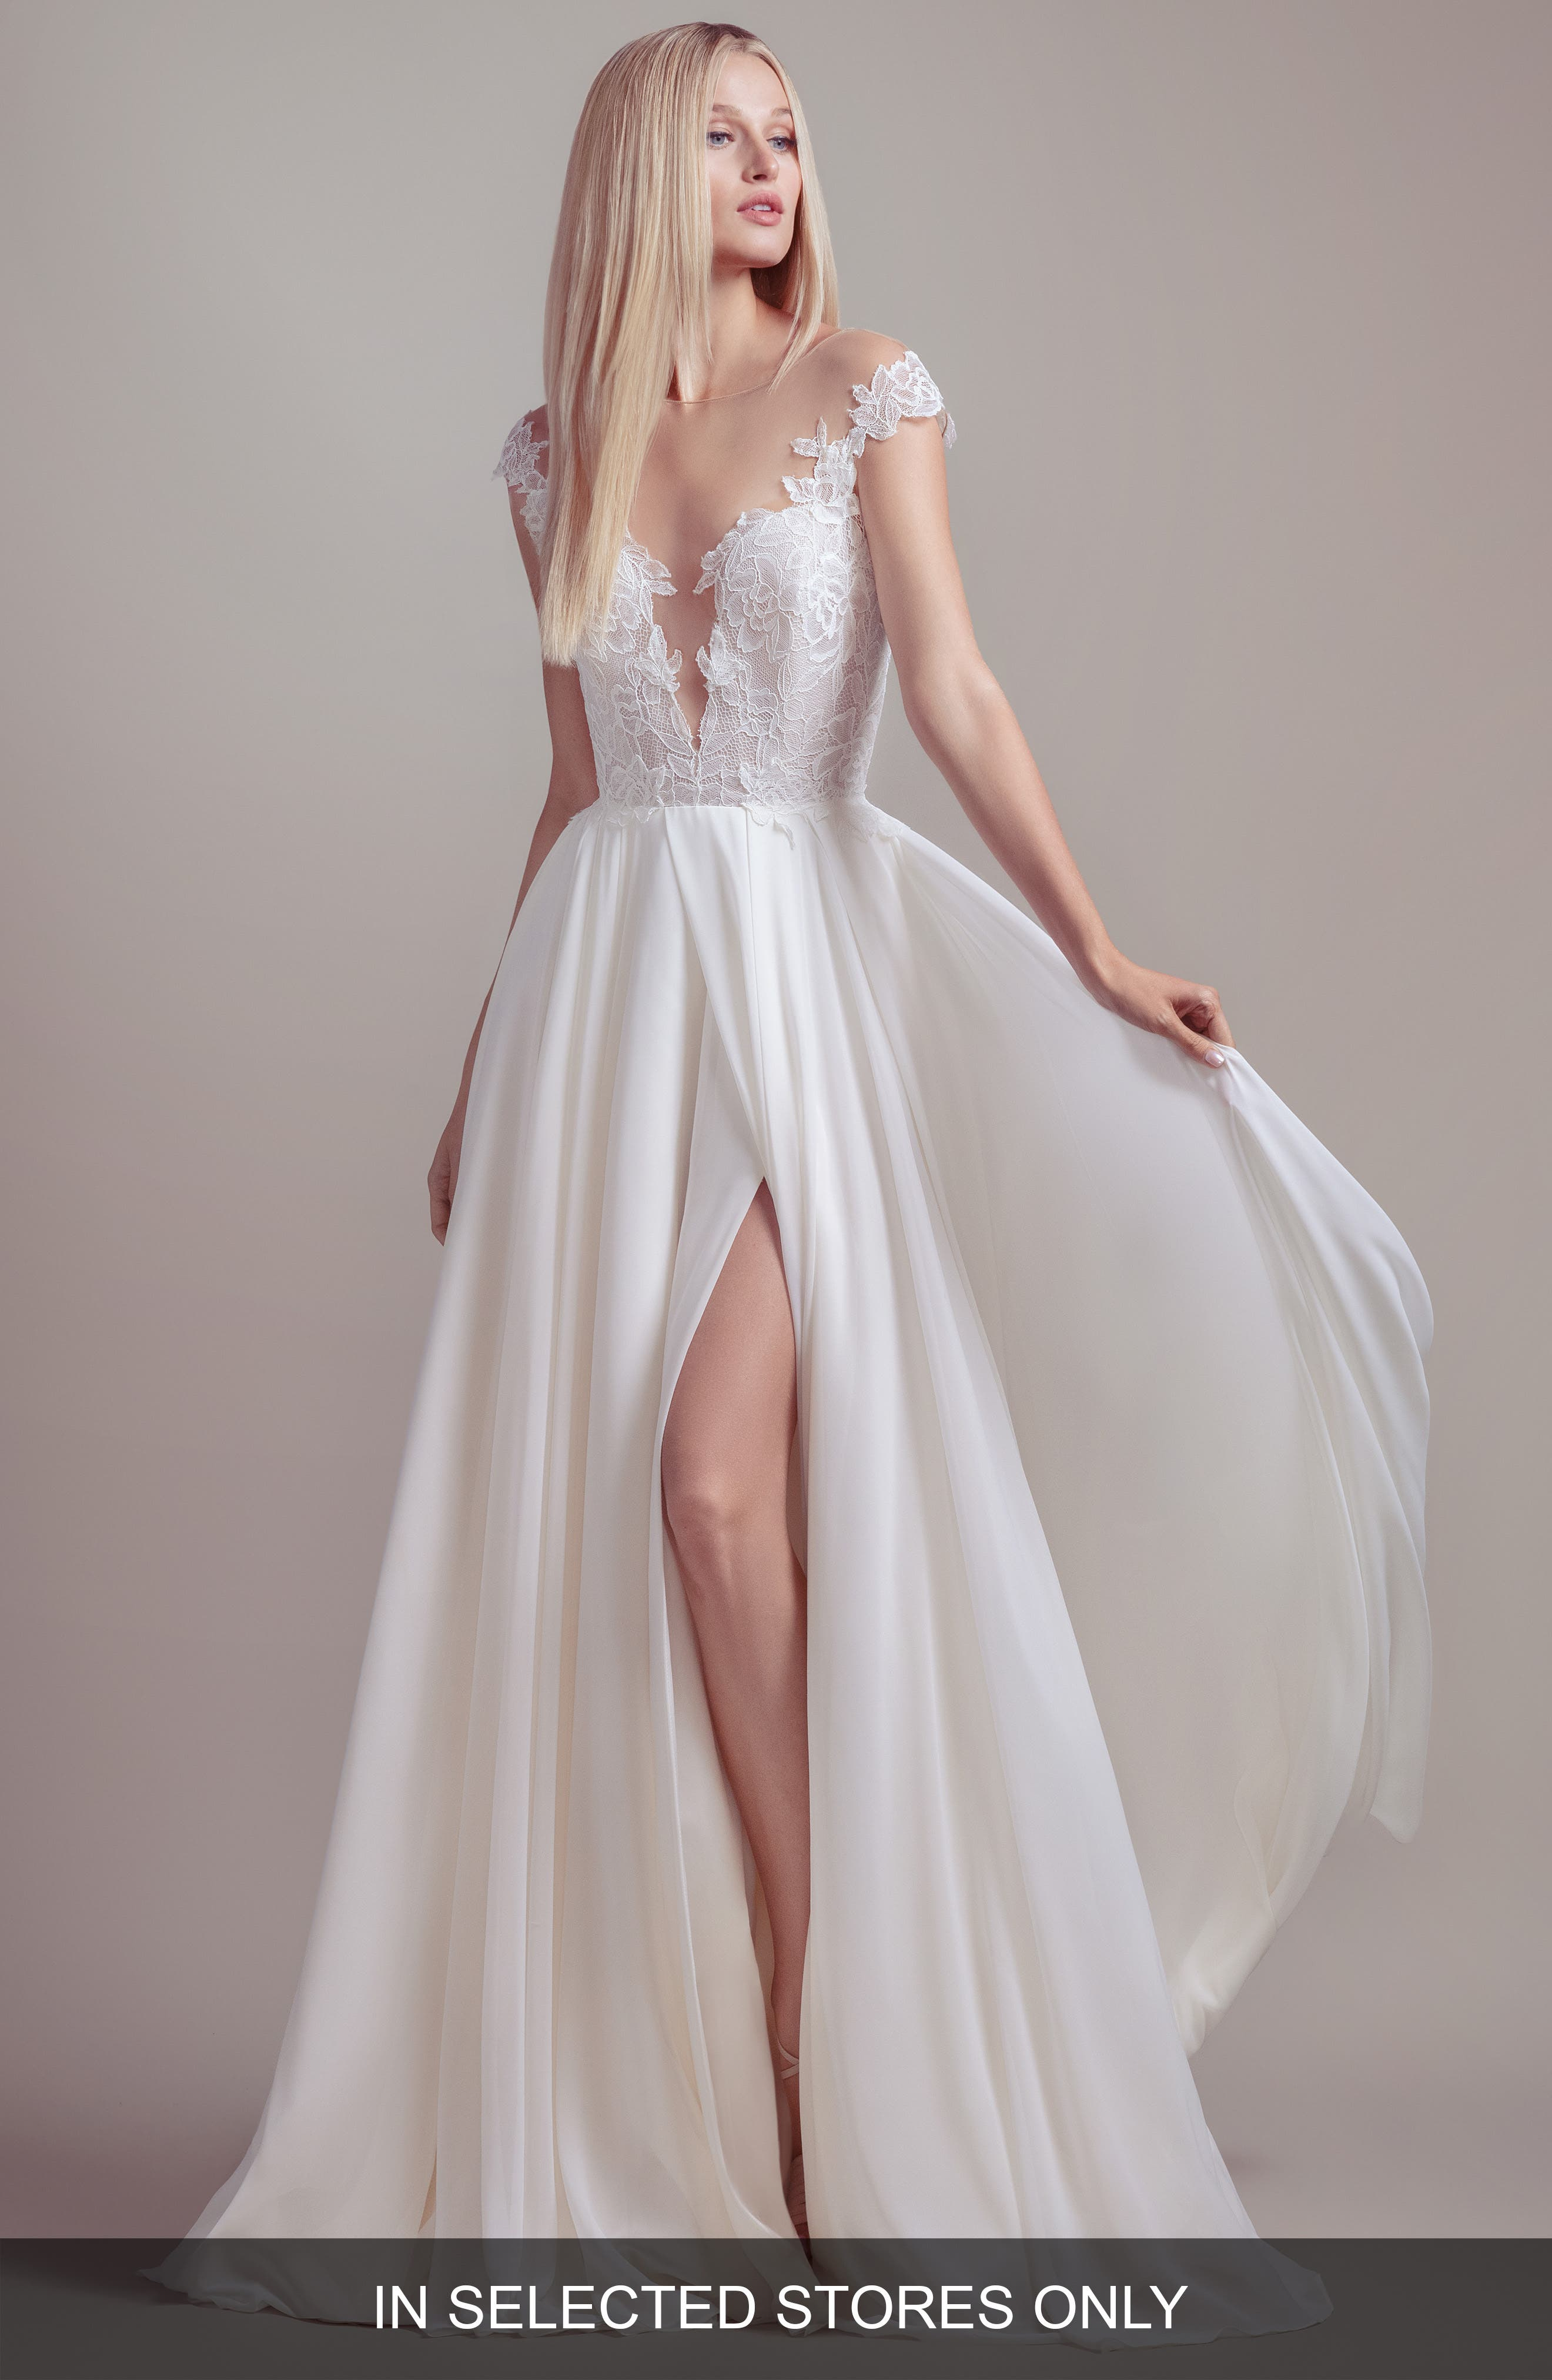 Blush By Hayley Paige Soleil Lace Bodice Off The Shoulder Wedding Dress, Size IN STORE ONLY - Ivory